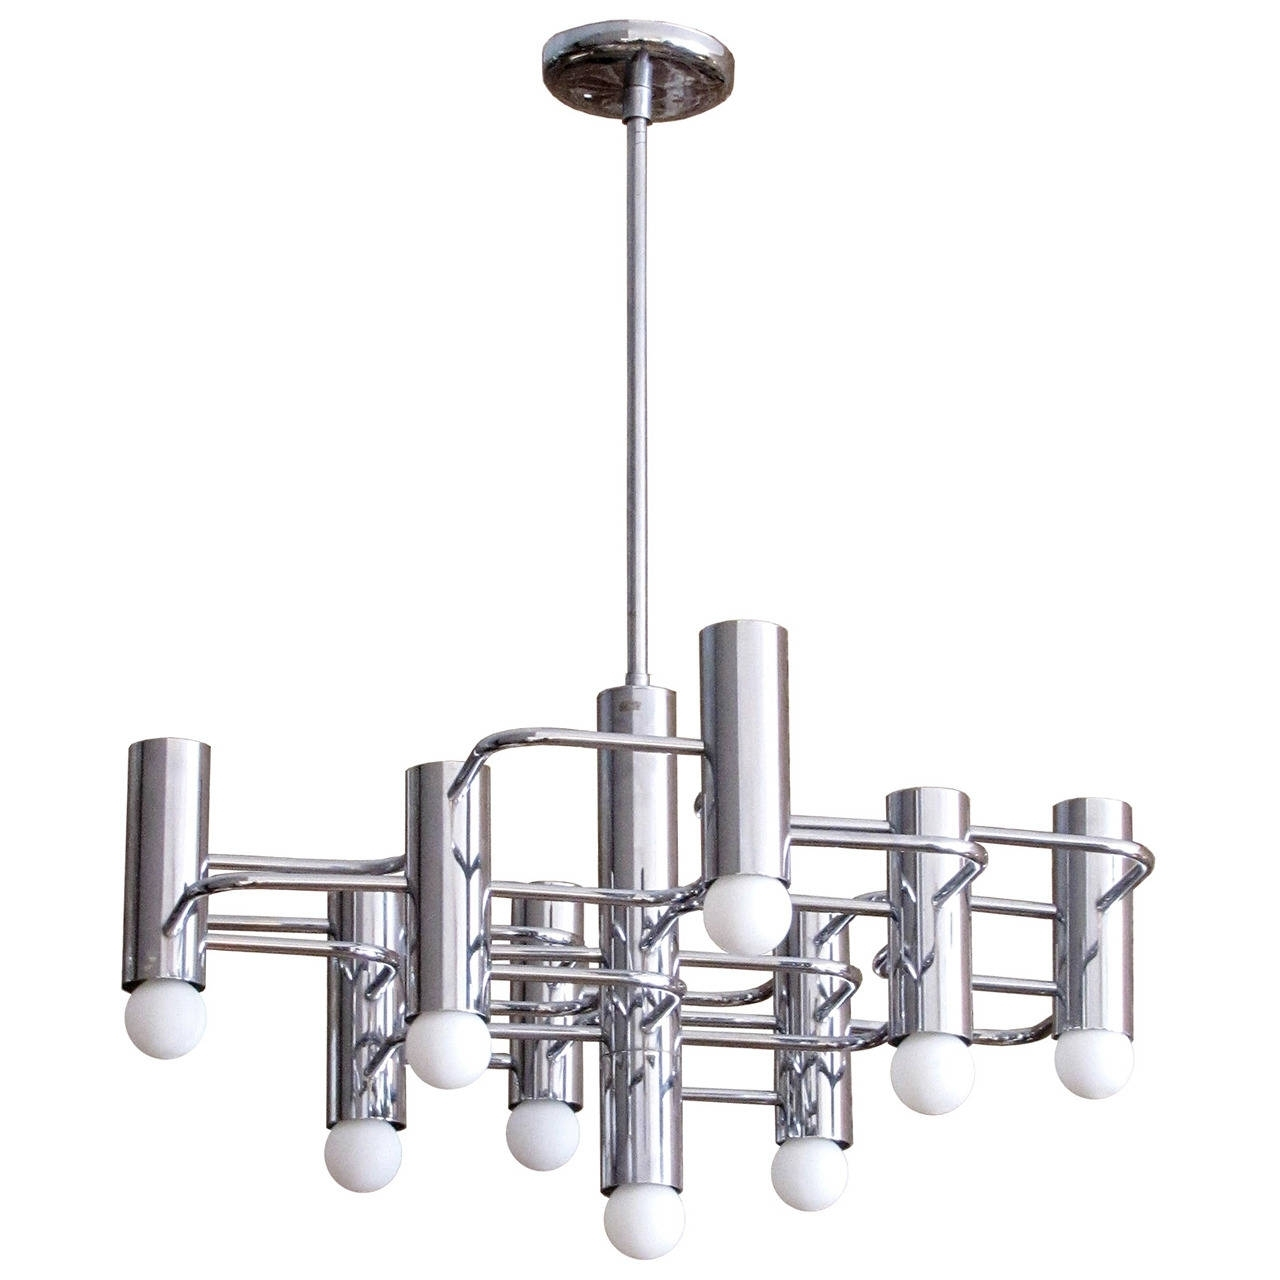 Best And Newest Boulanger Chrome Chandelier, 1960 For Sale At 1Stdibs Within Chrome Chandeliers (View 5 of 20)